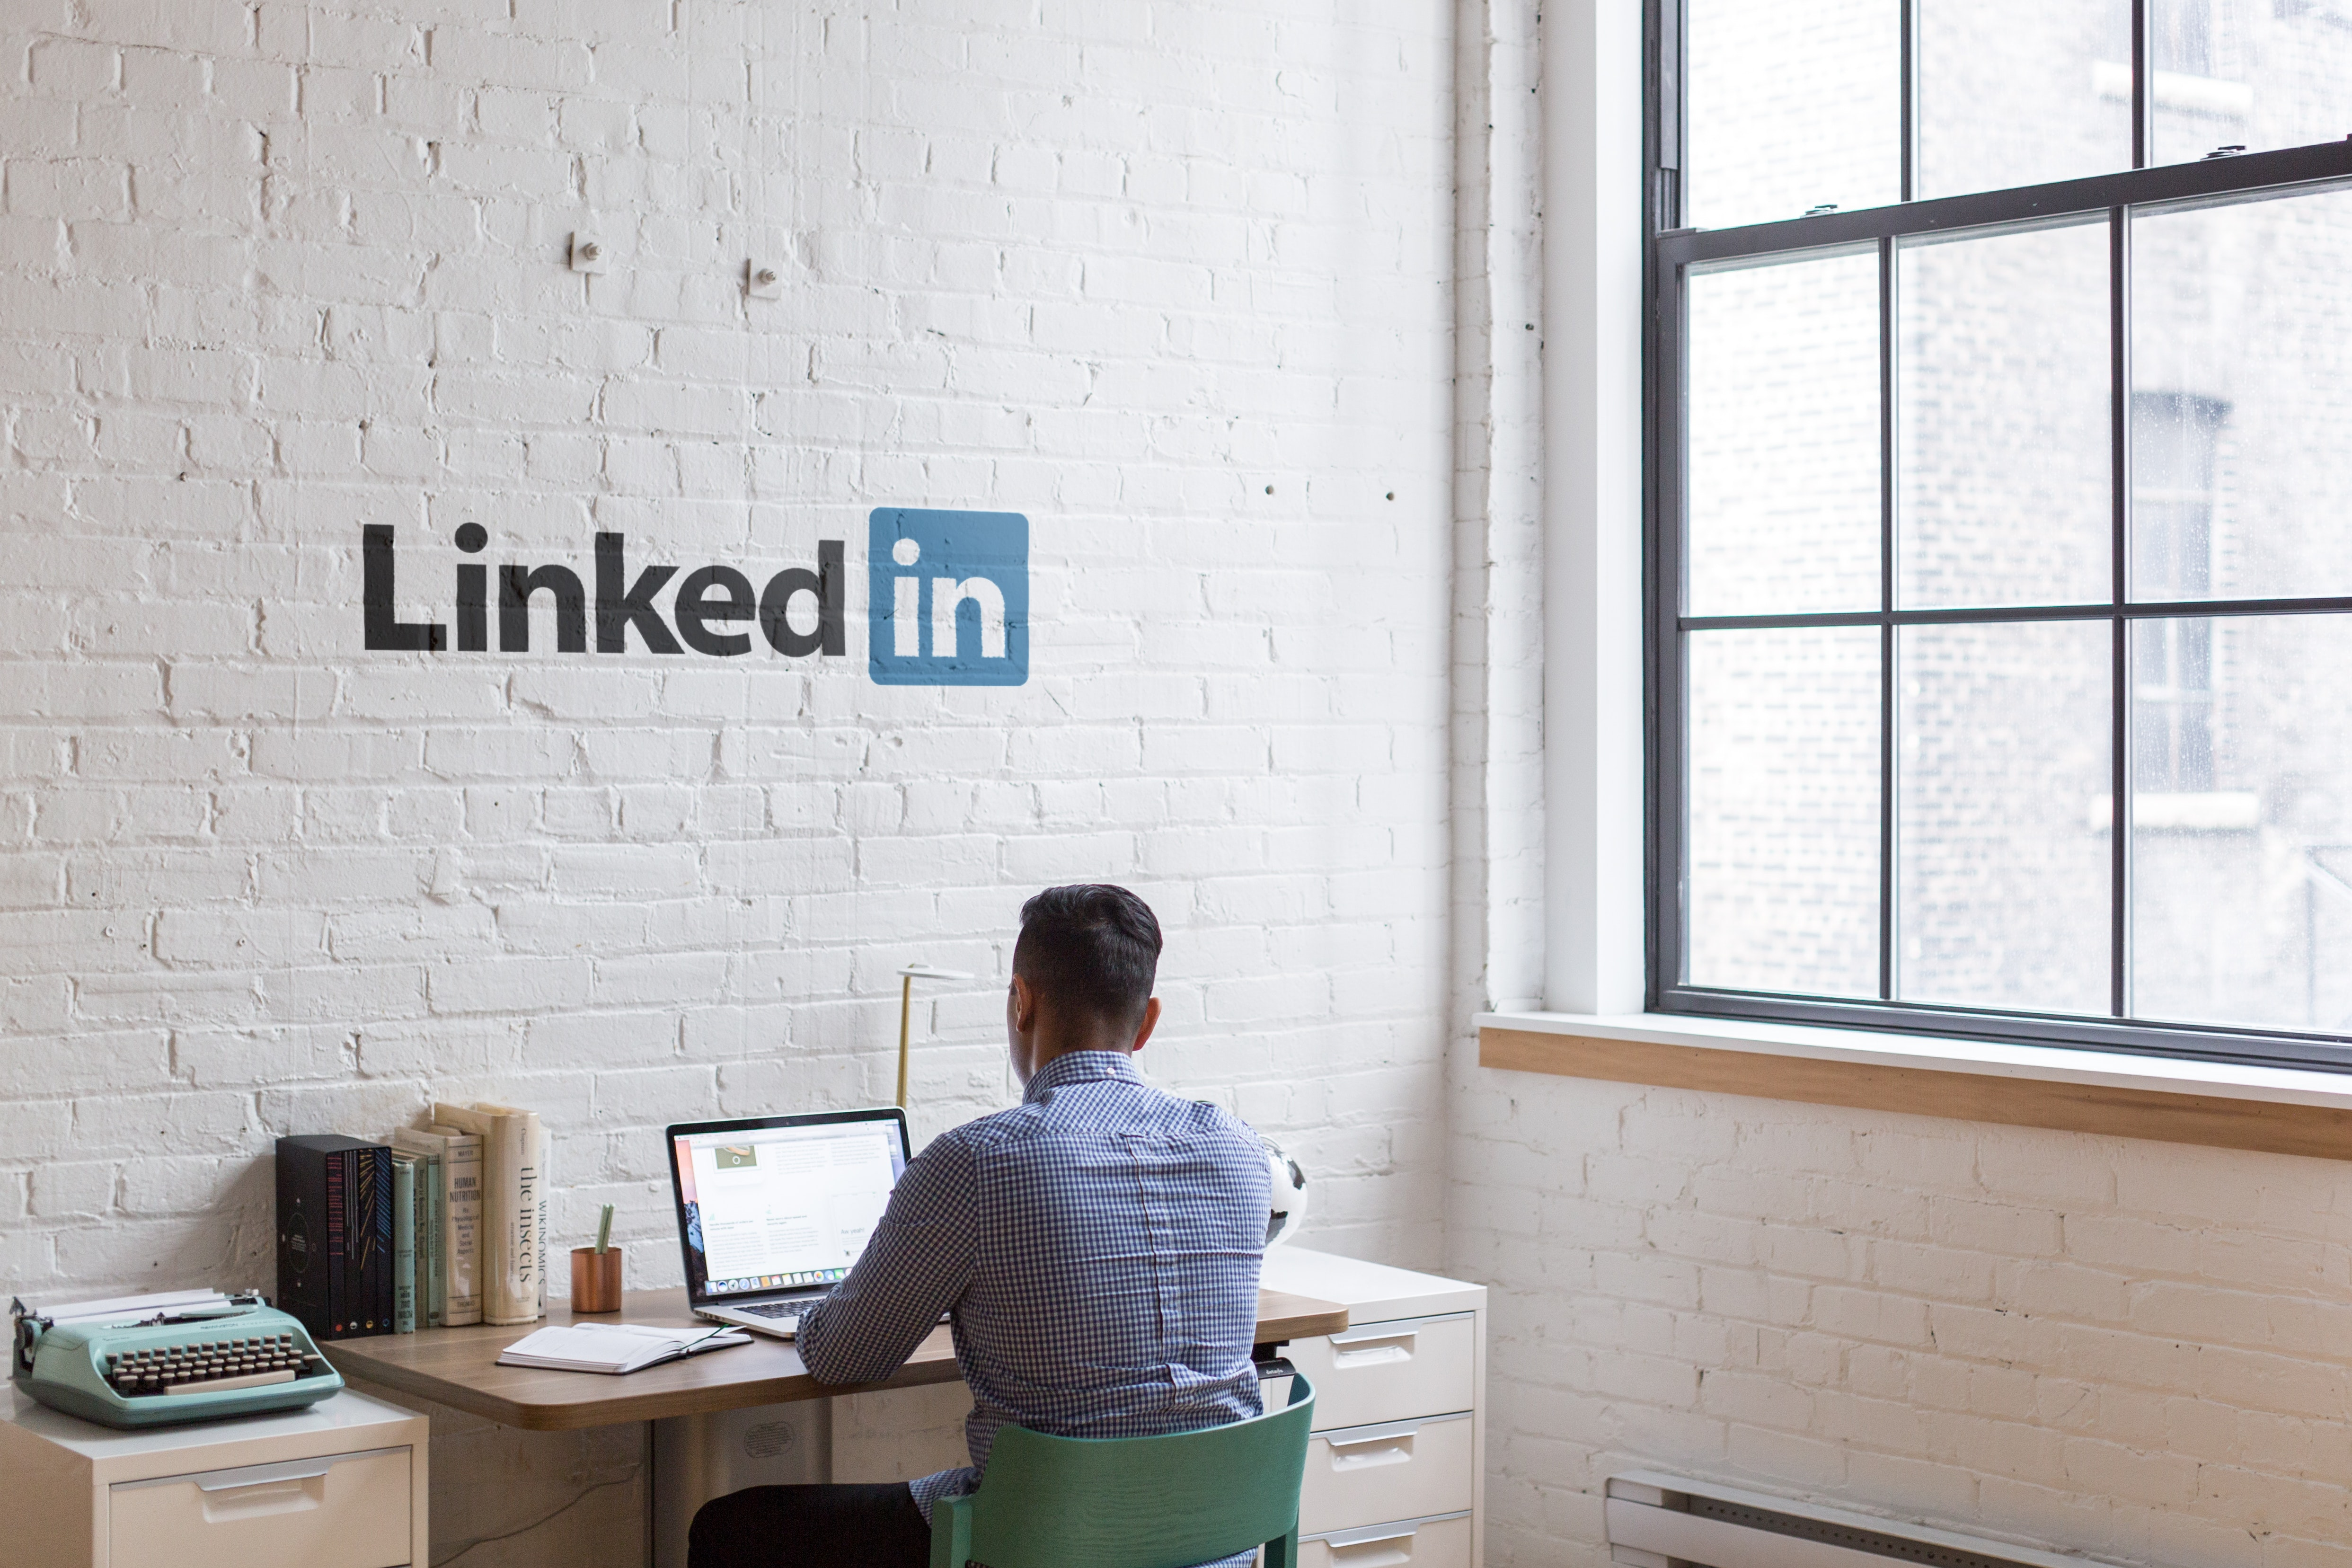 man sitting at a desk facing a white wall that says LinkedIn